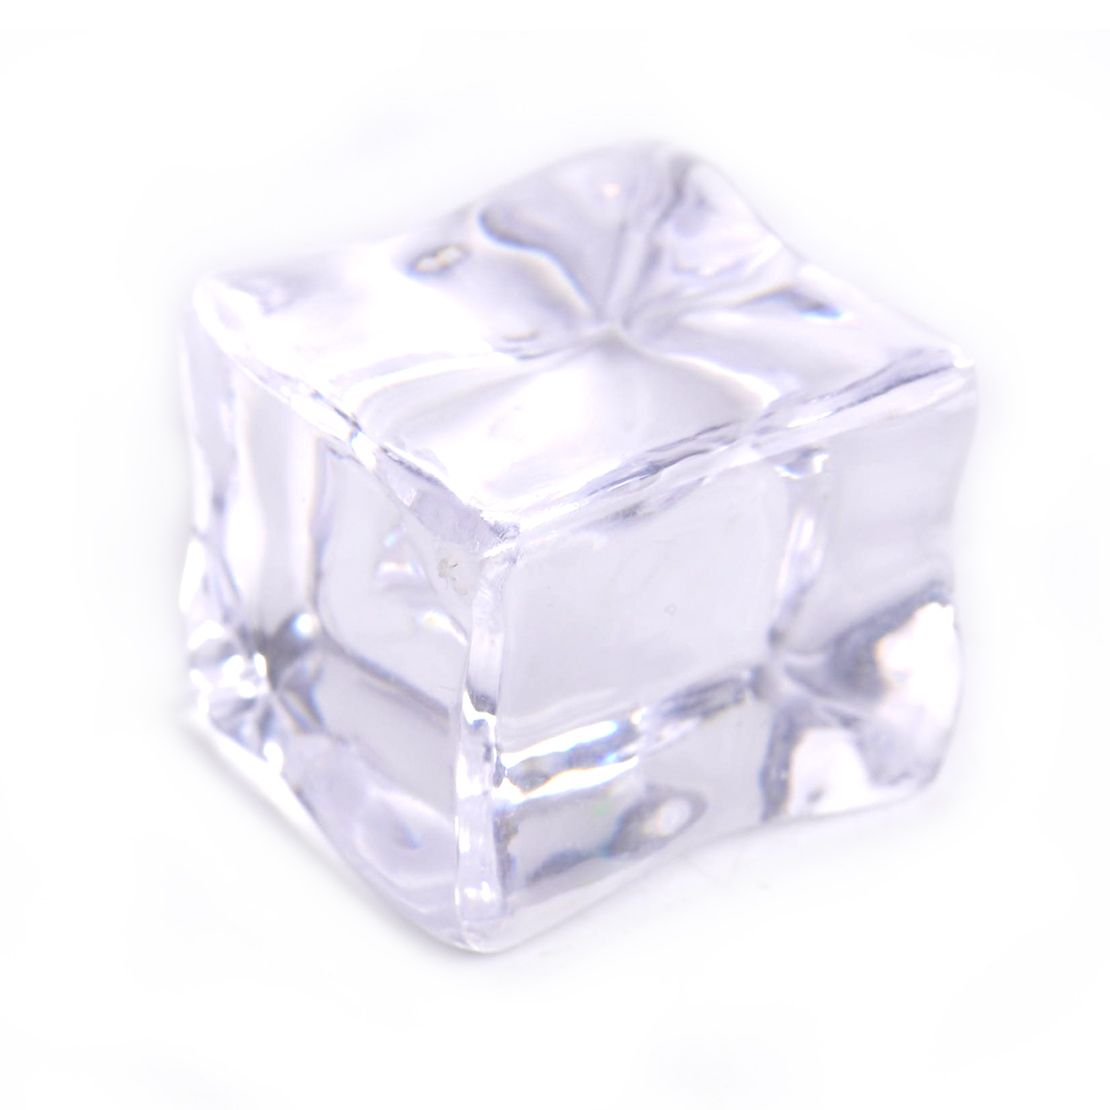 how to make clear ice balls at home